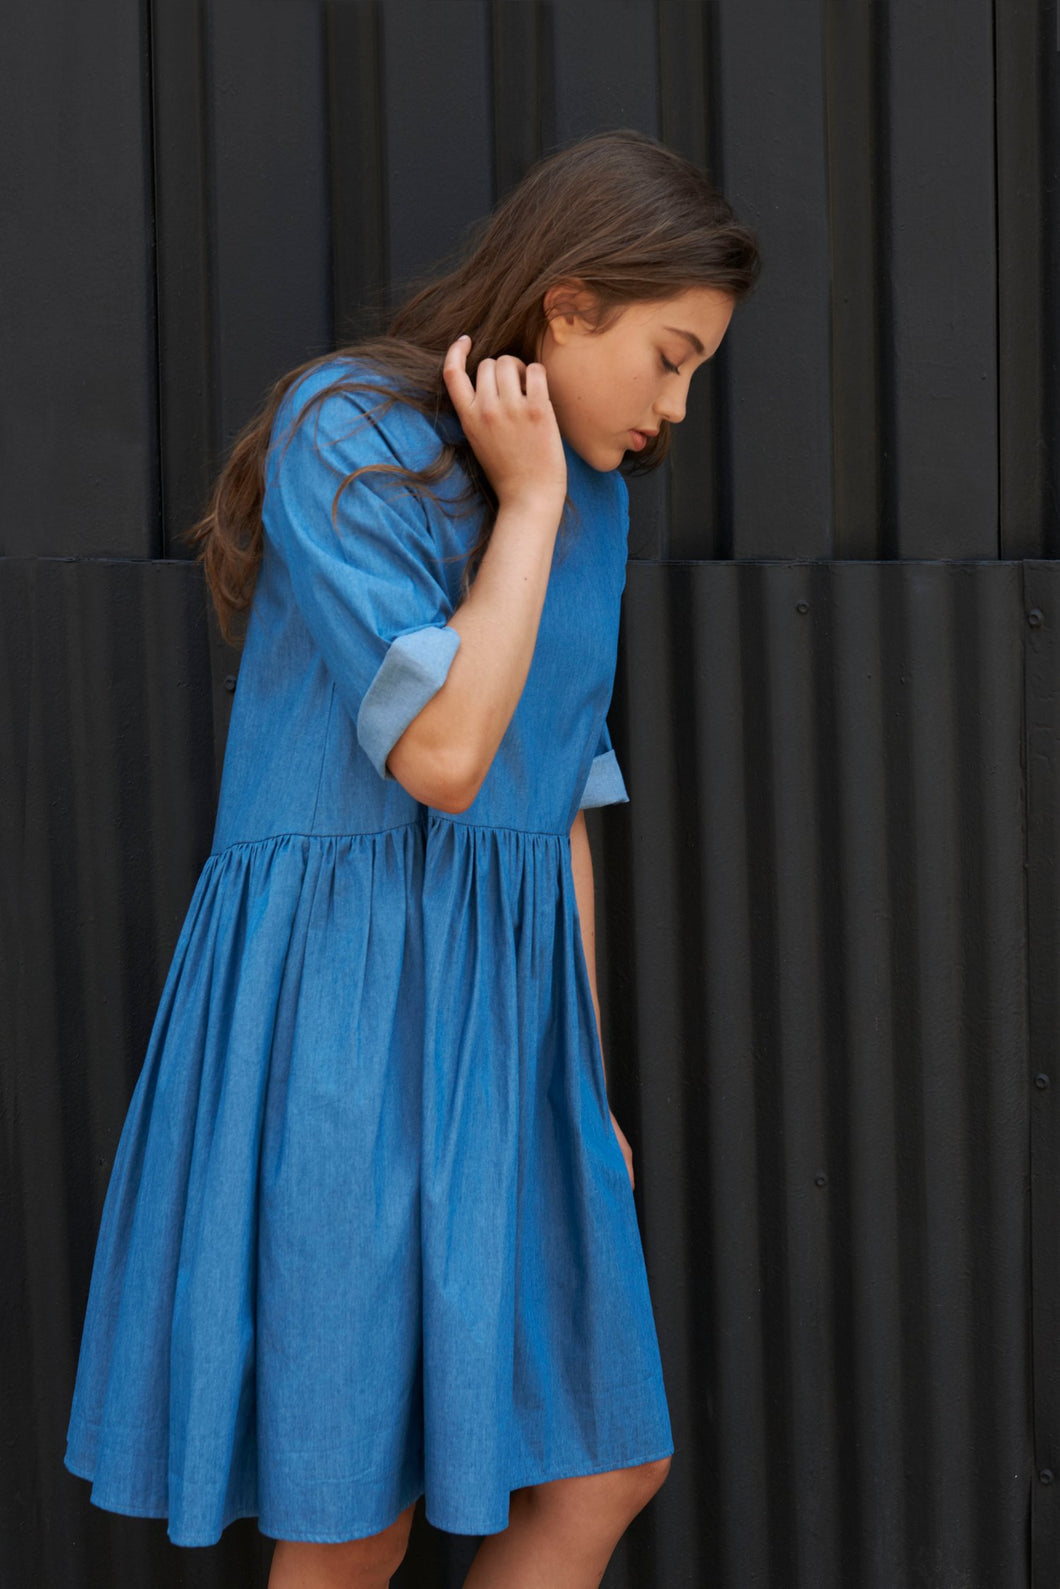 Denim Volume Dress - Unaya women's modest tops skirts dresses jewish girls conservative clothing fashion apparel